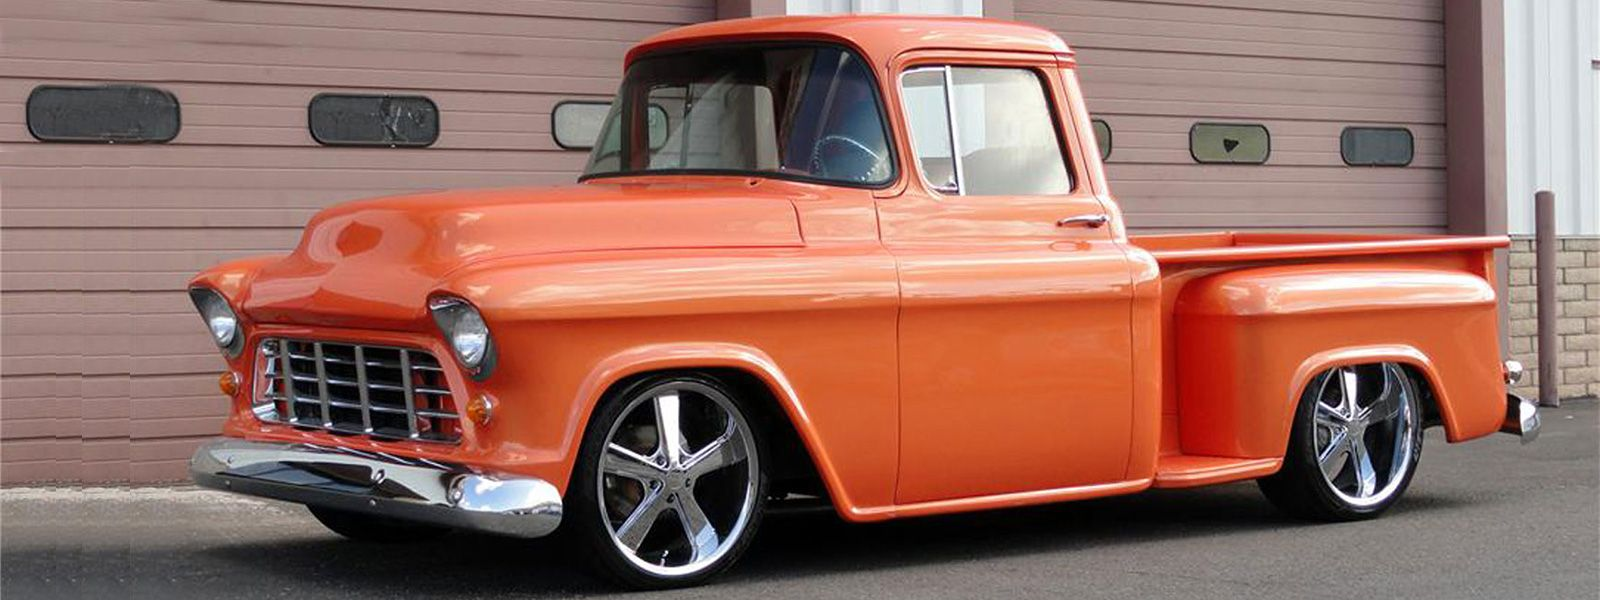 Truck chevy 1955 truck : Image result for 1955 chevy truck   Chevy c10   Pinterest   57 ...